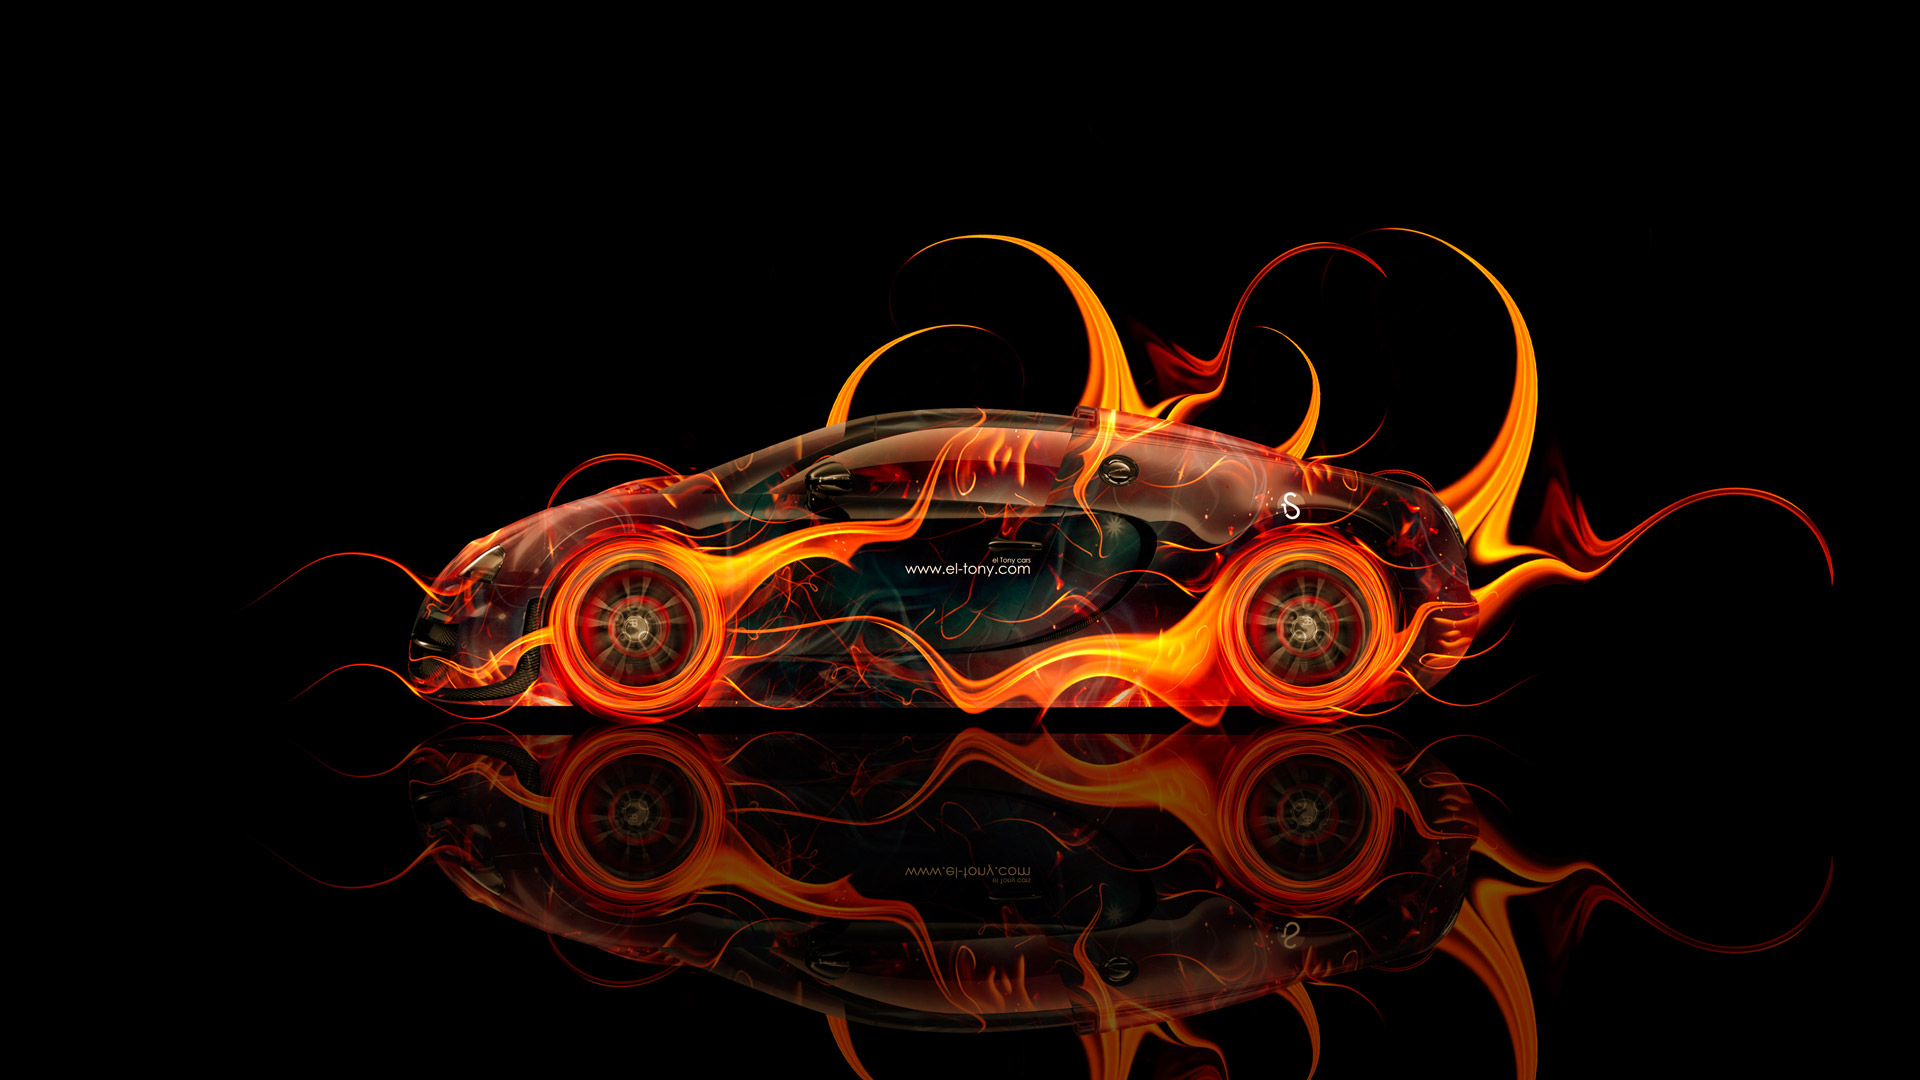 Beau Bugatti Veyron Side Fire Abstract Car 2014 HD